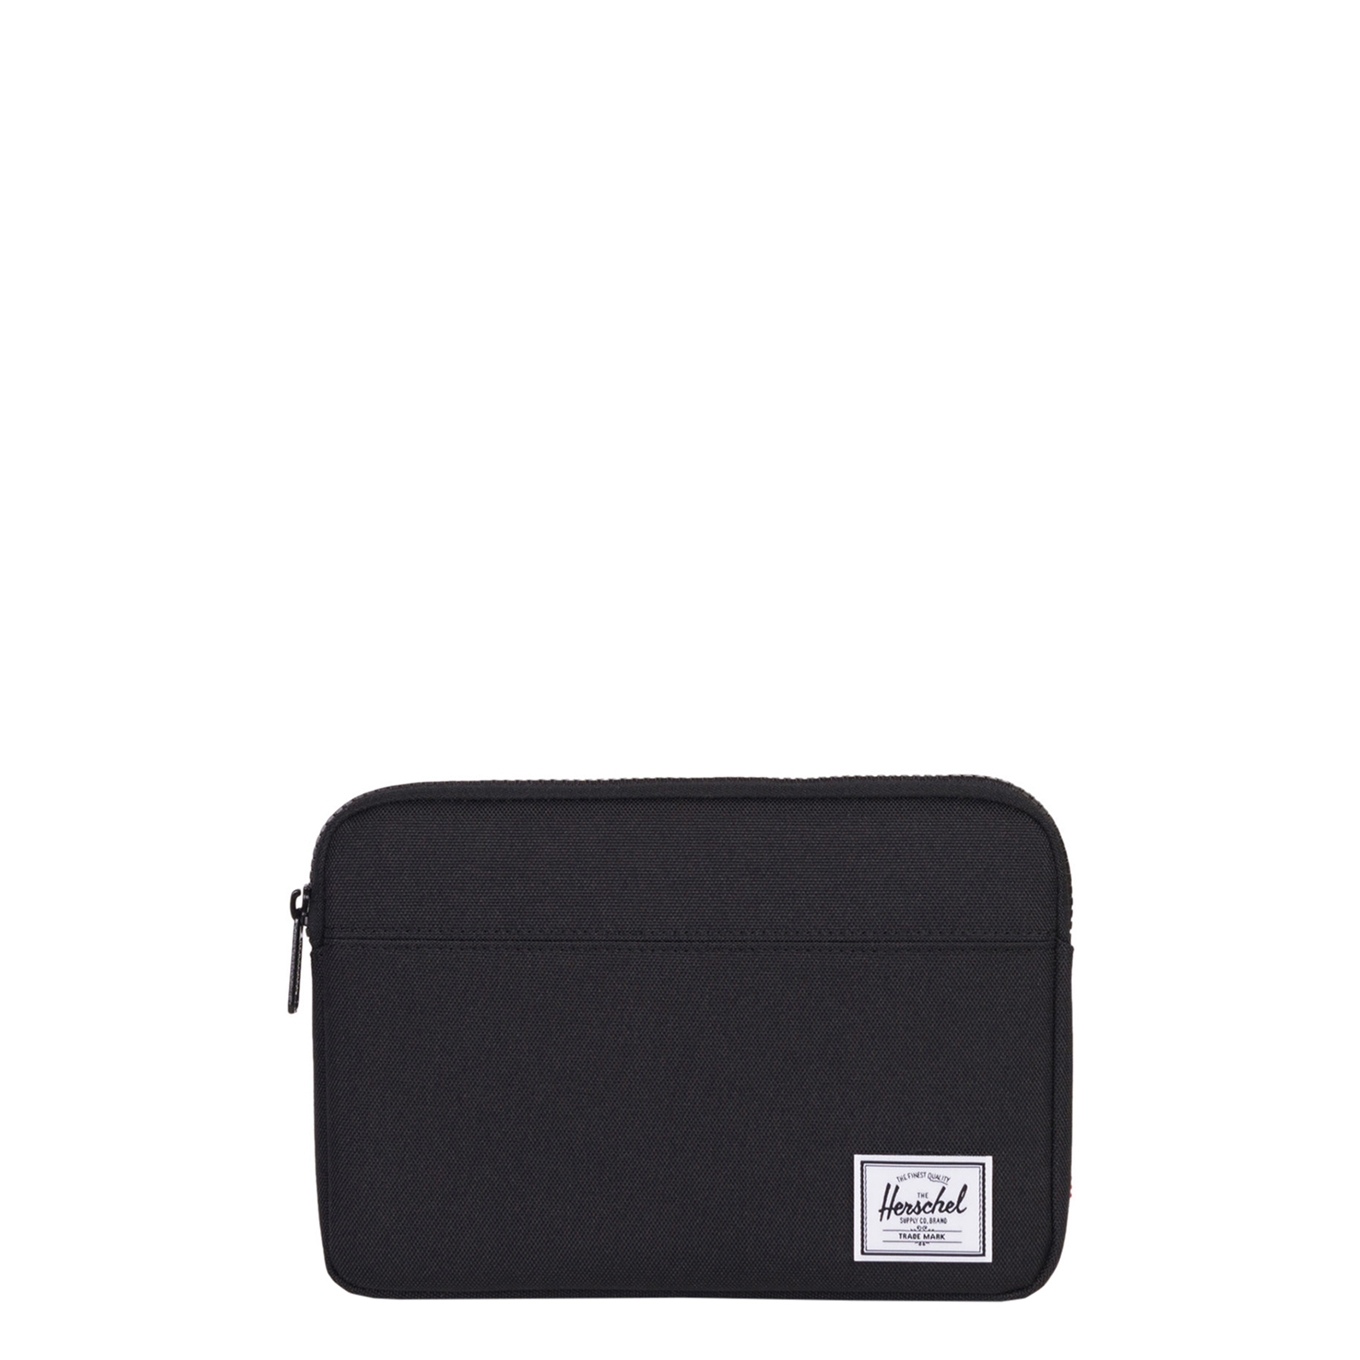 Herschel Supply Co. Anchor Sleeve for iPad Mini black Laptopsleeve